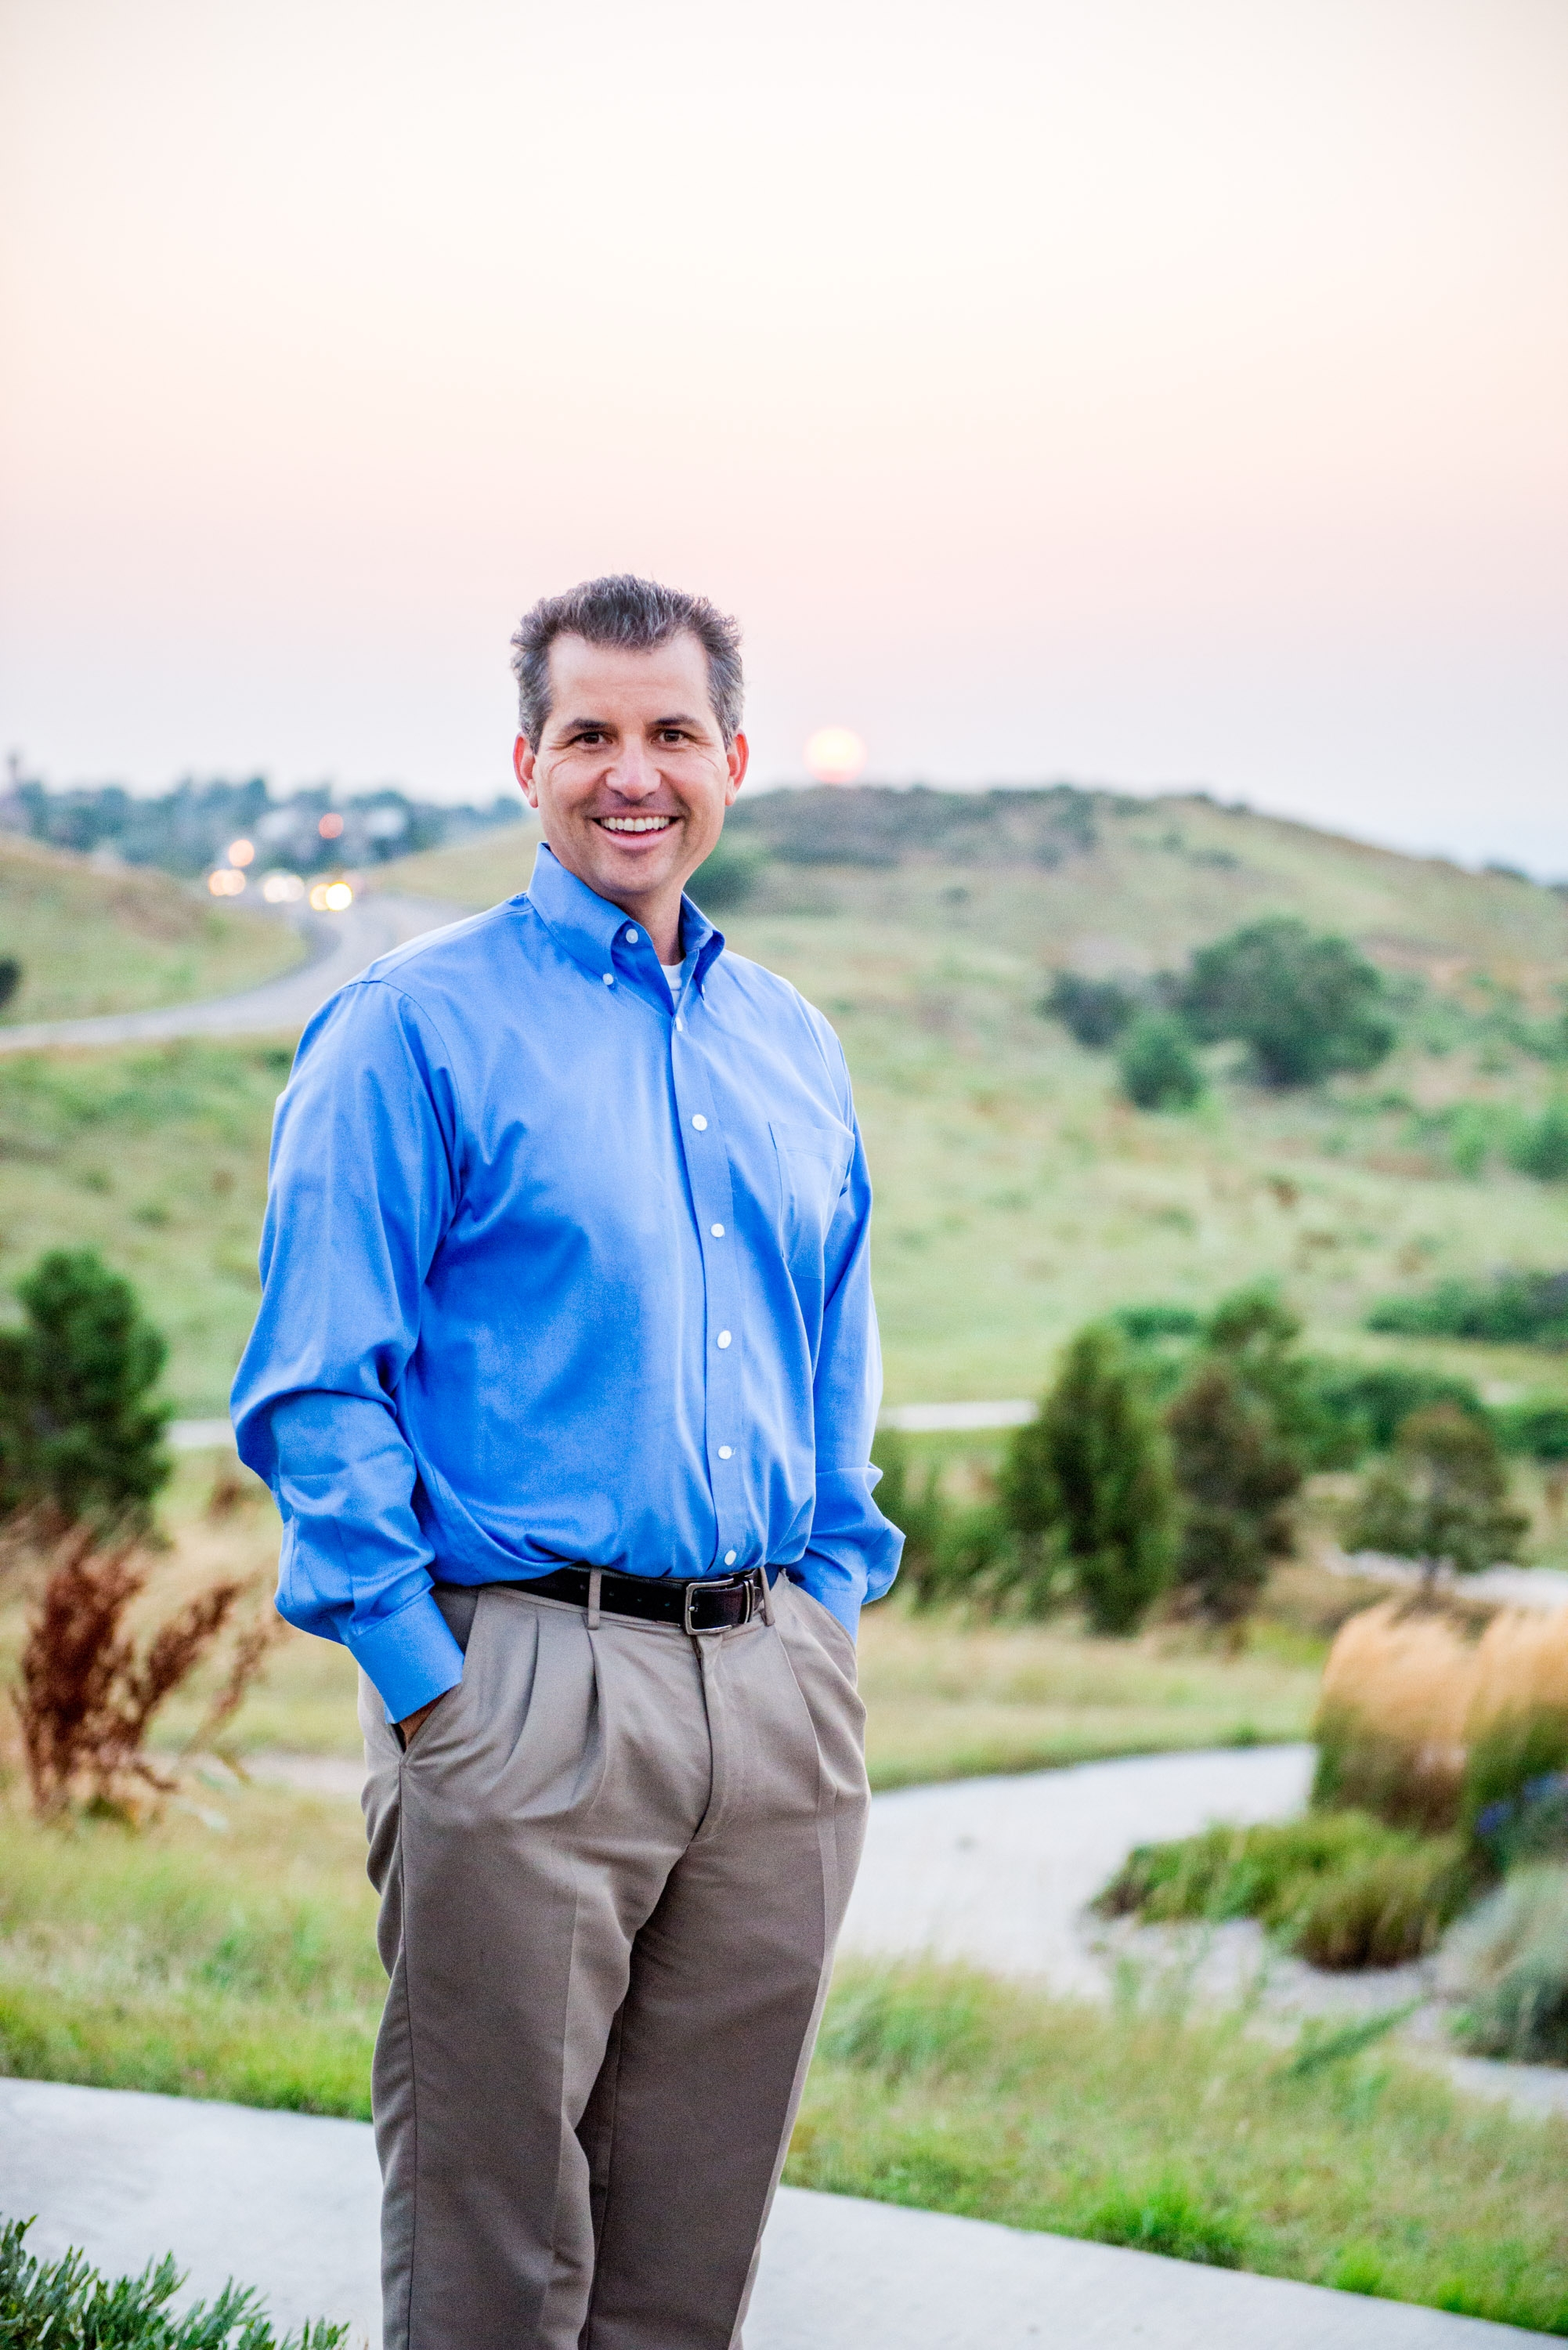 Andrew Nagel, Certified Negotiation Expert with Re/Max of Cherry Creek